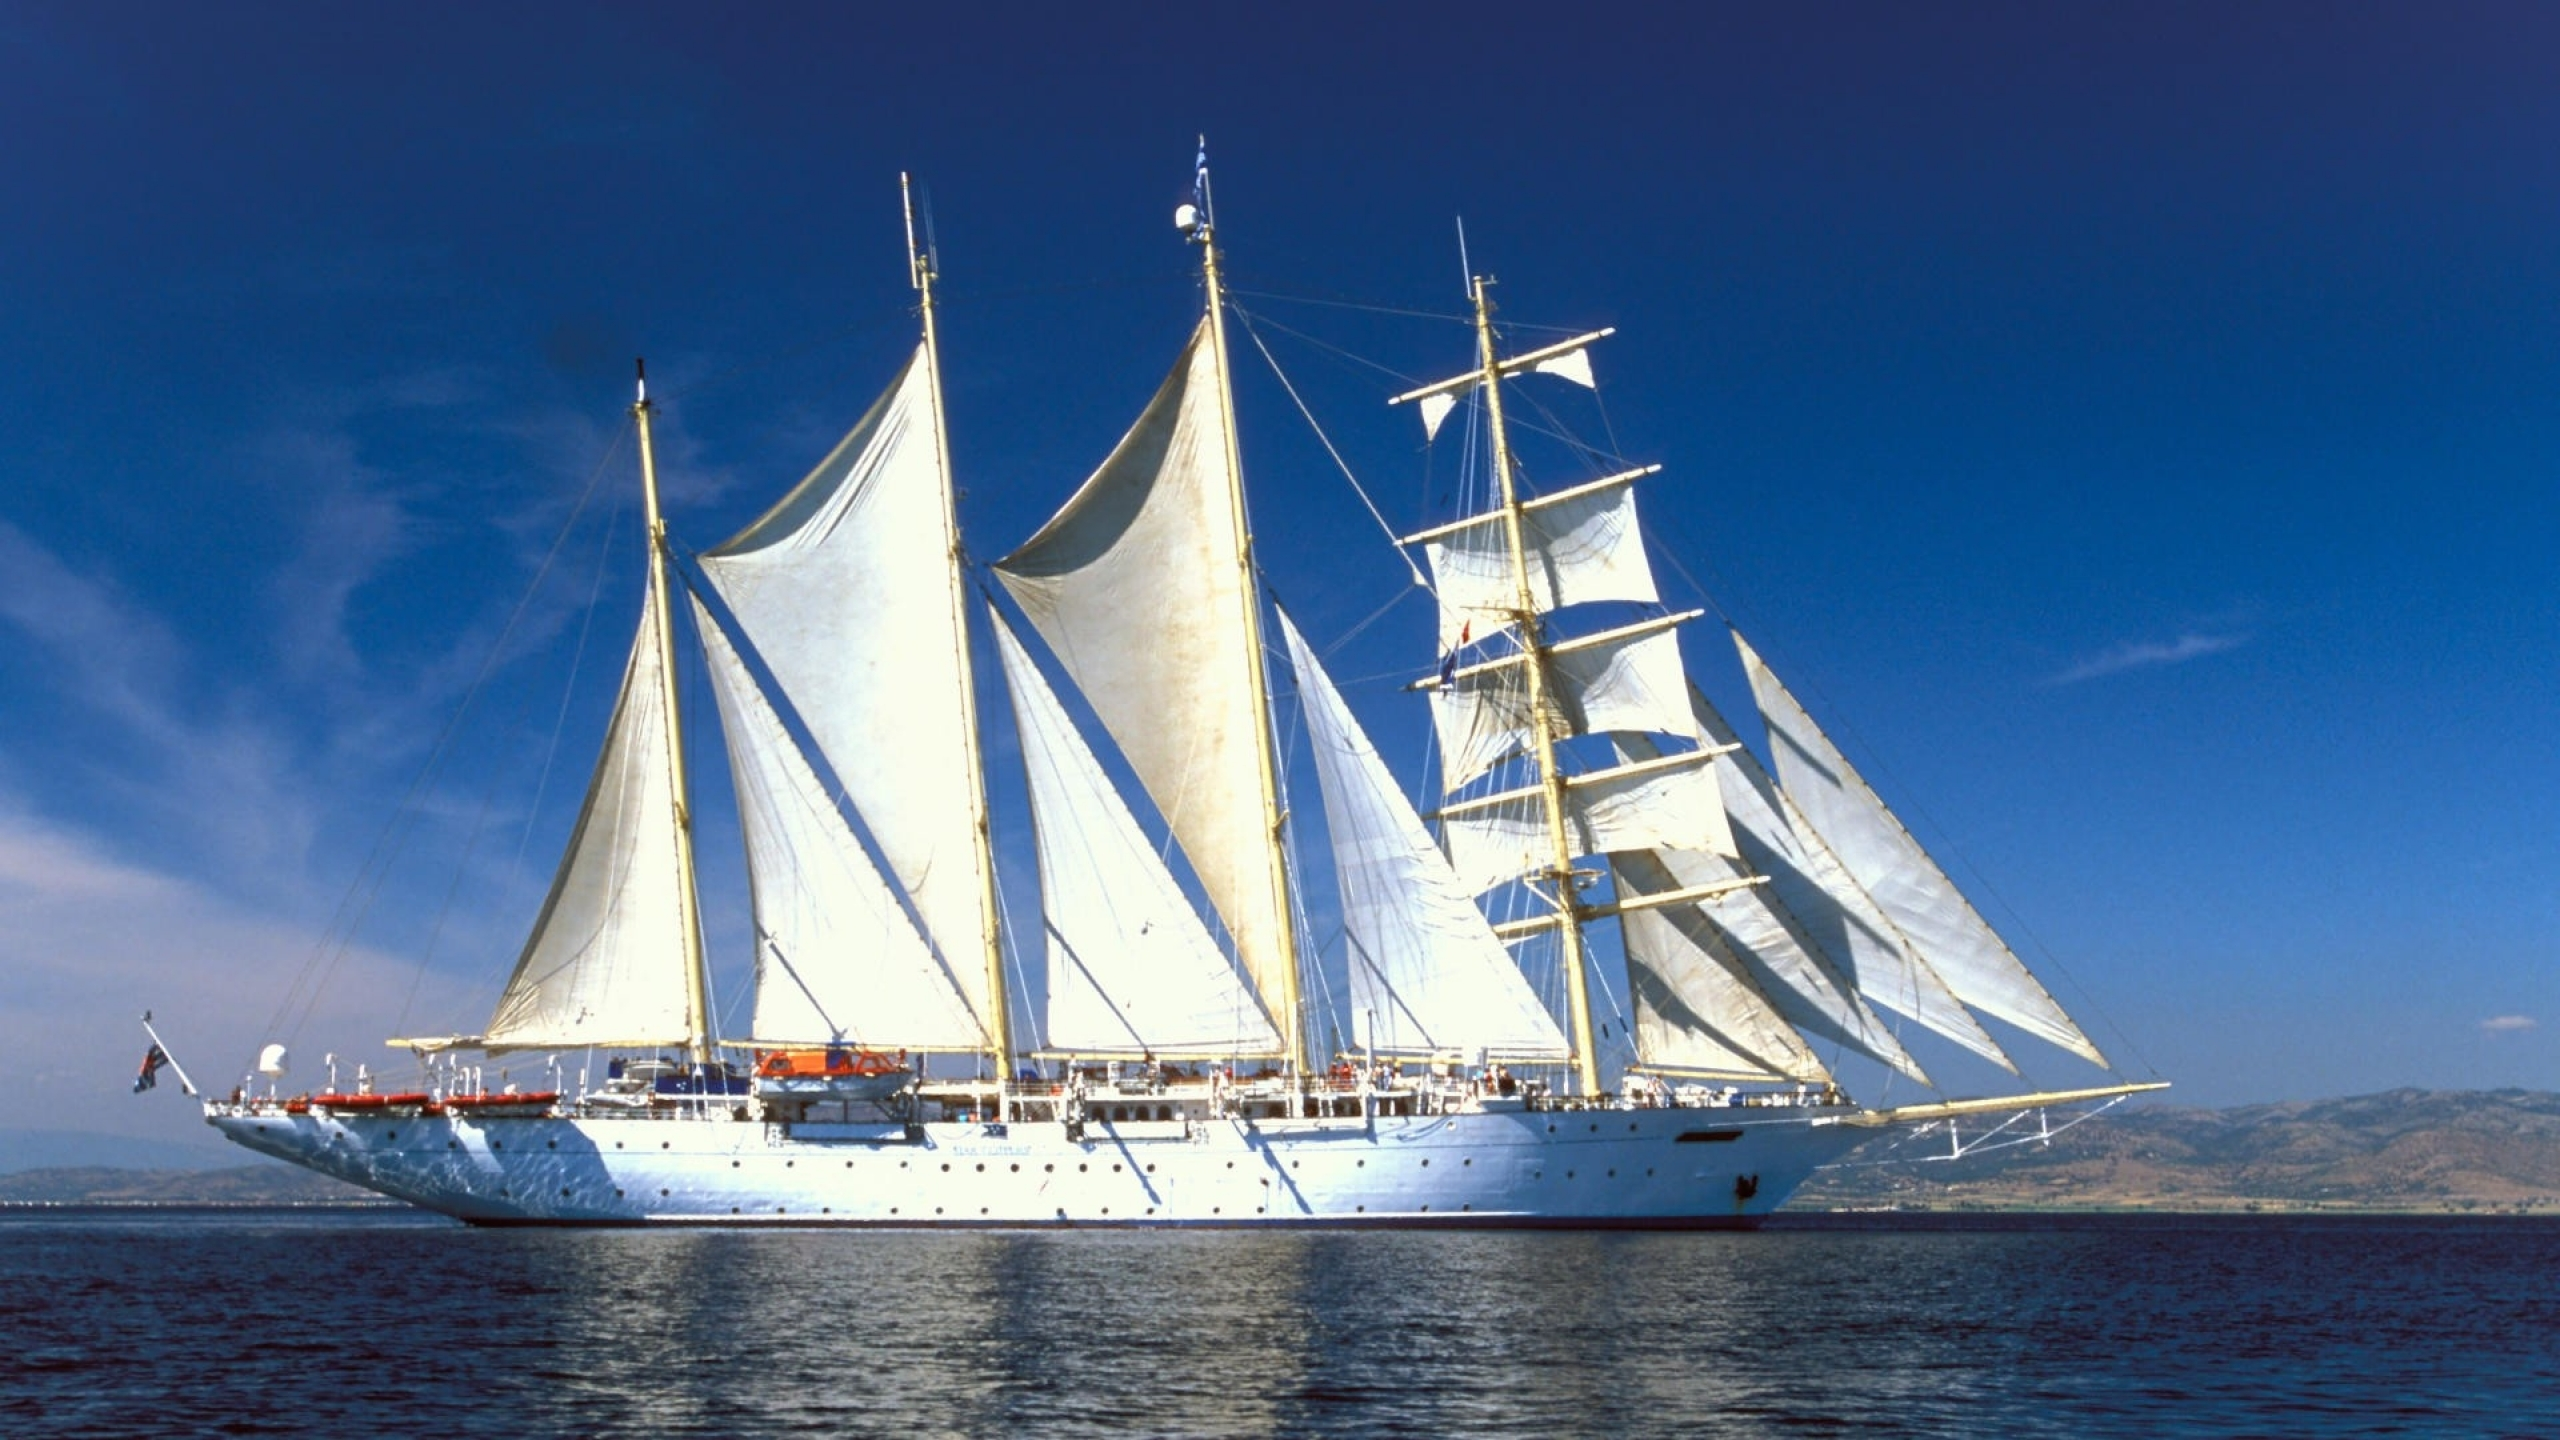 Sailing Ship Full HD Wallpaper and Background | 2560x1440 ...